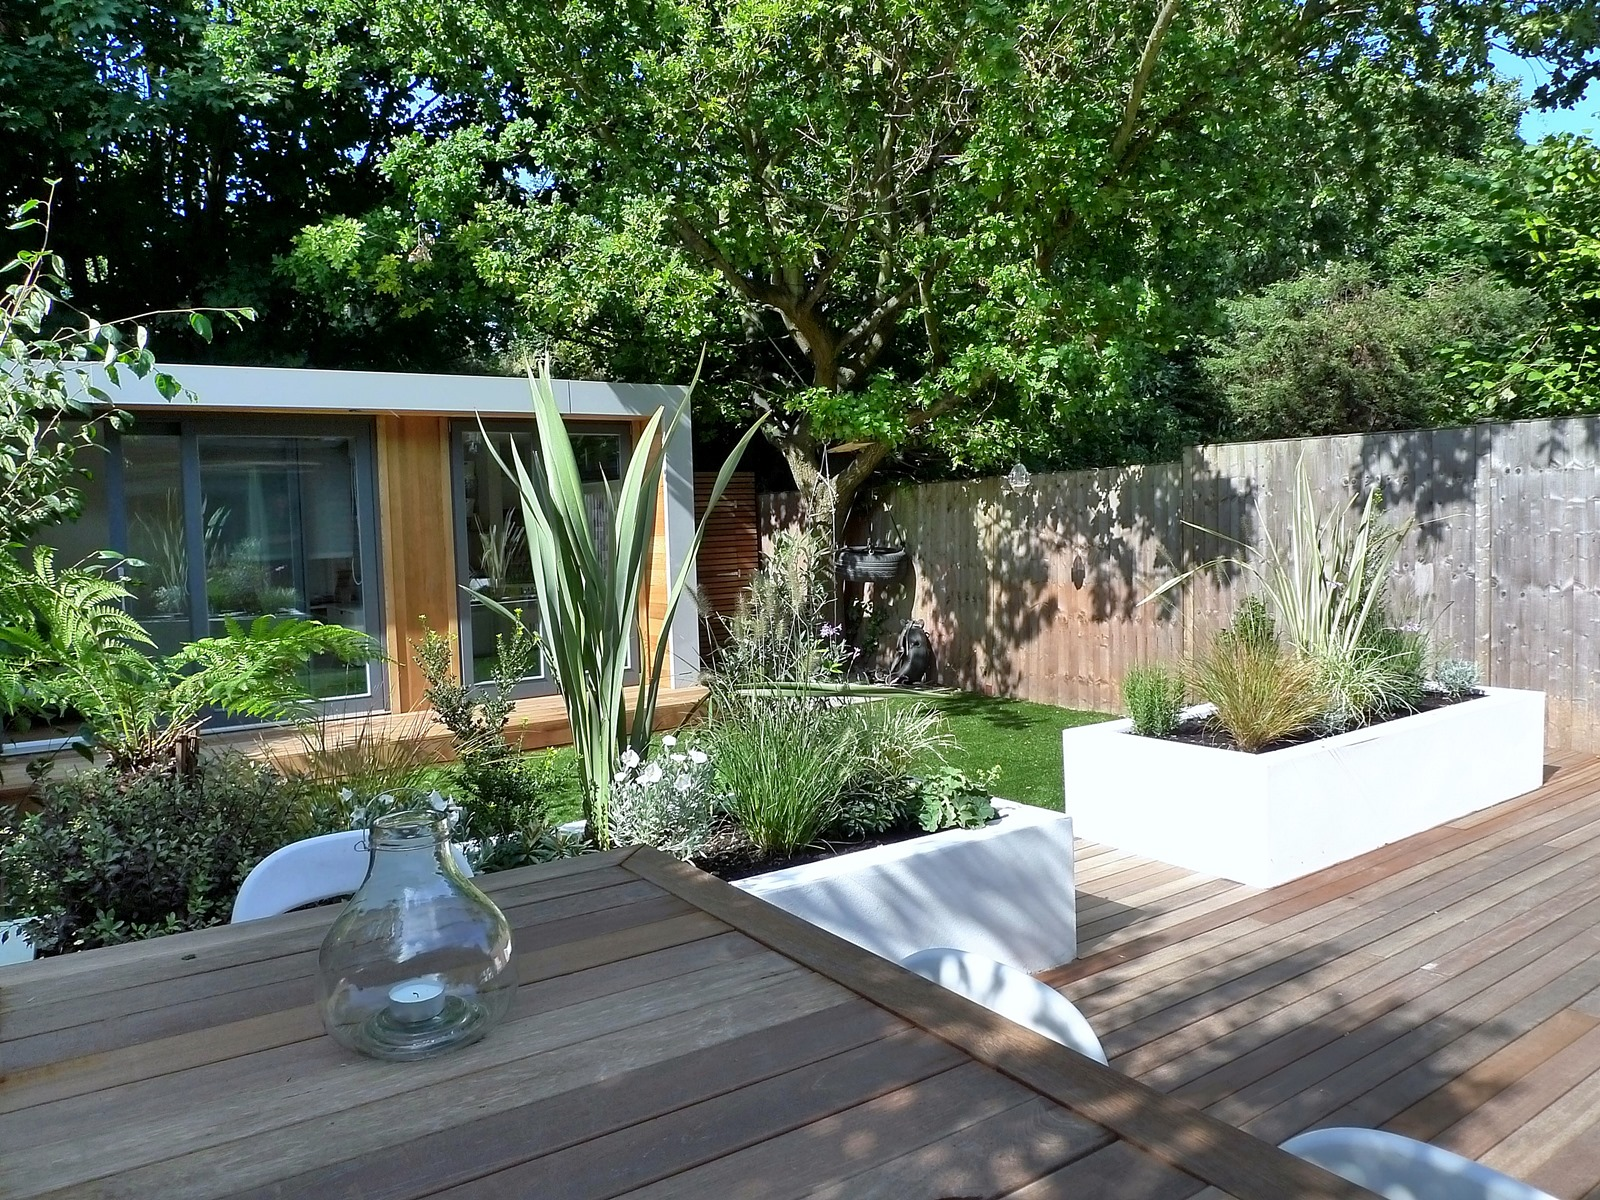 clapham and balham modern garden design decking planting artificial lawn grass hardwood privacy screen indoor outdoor space (3)